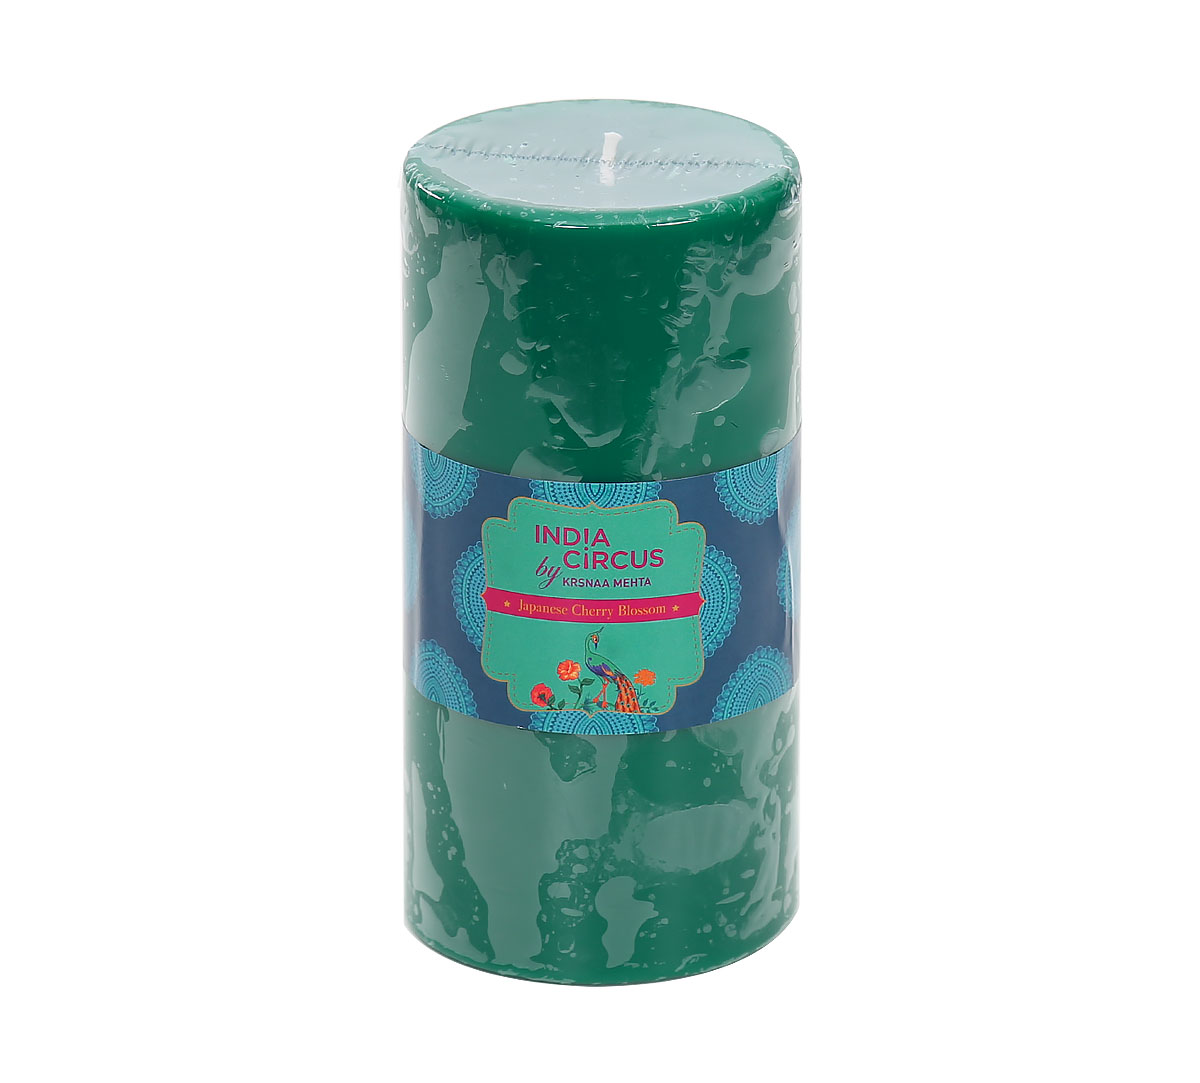 Buy Scented Pillar Candles At Best Prices On India Circus